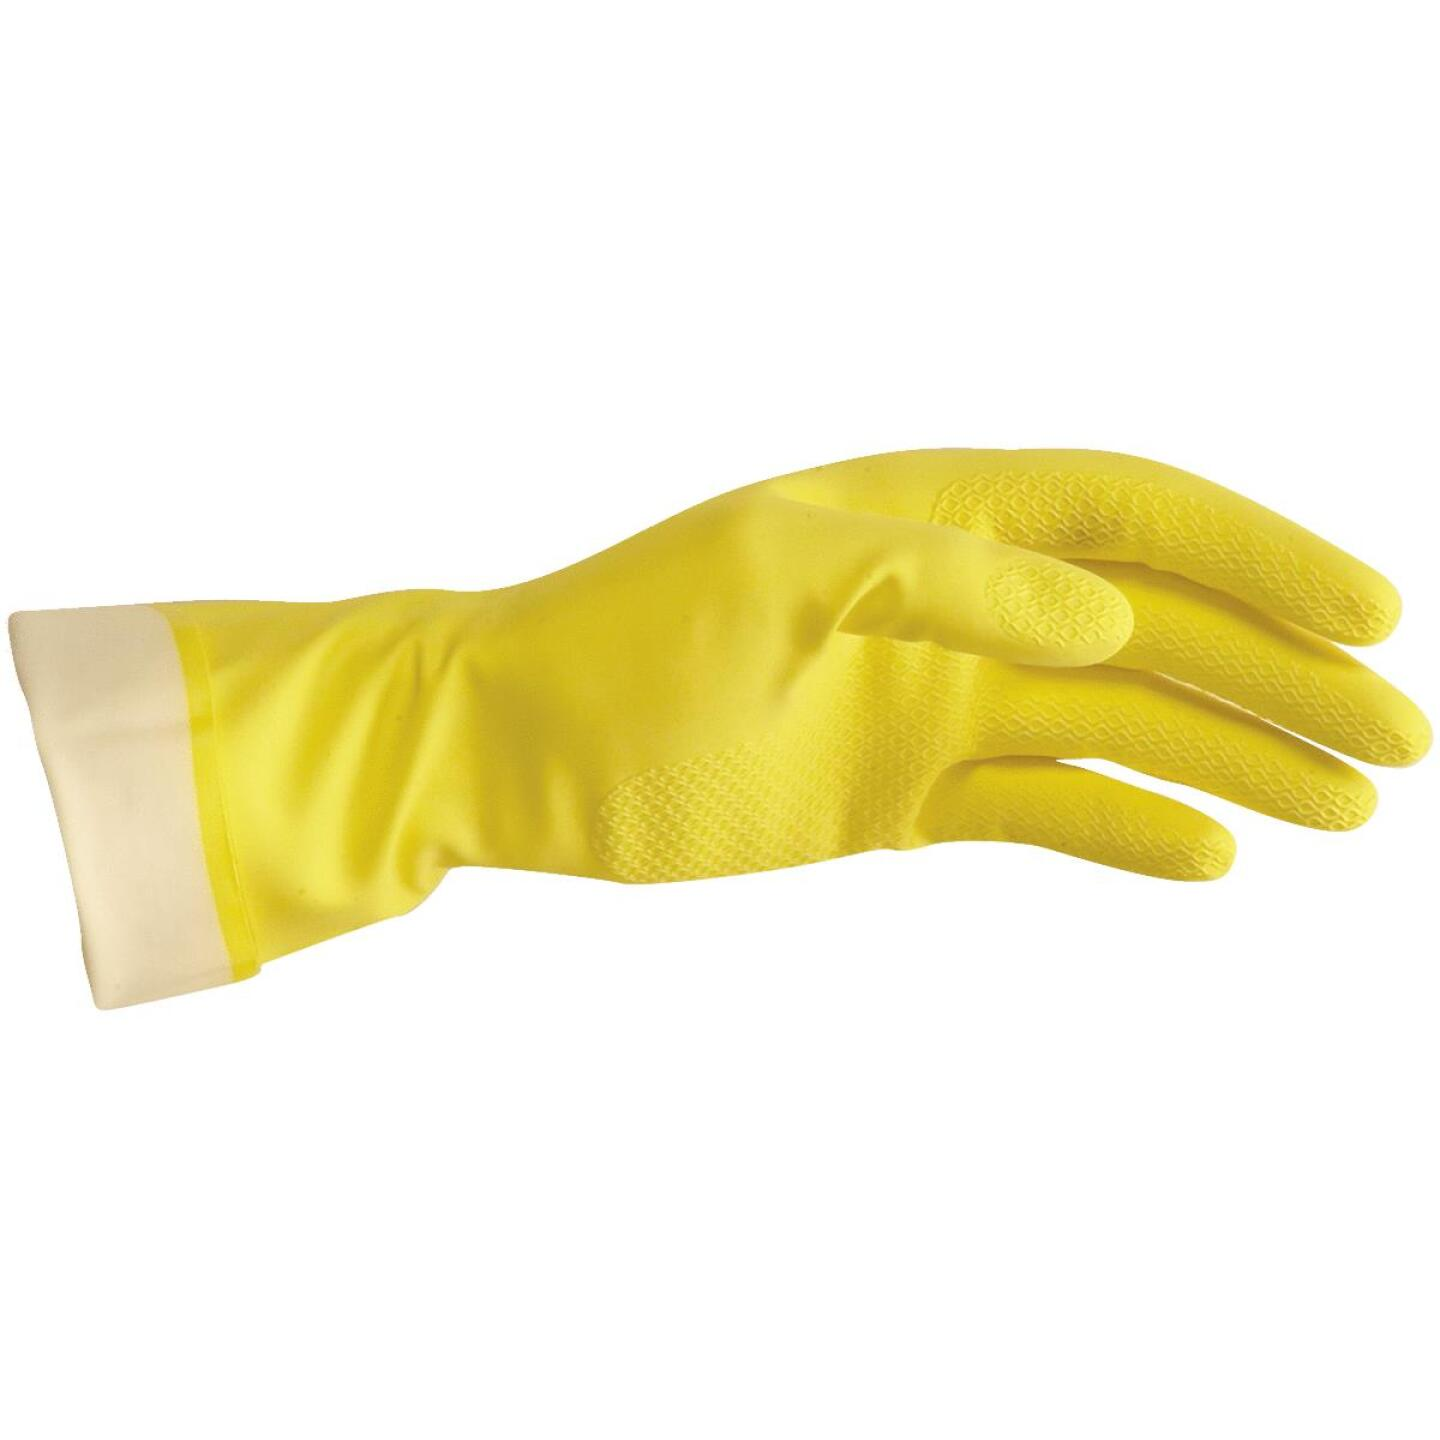 Do it Large Latex Rubber Glove Image 7